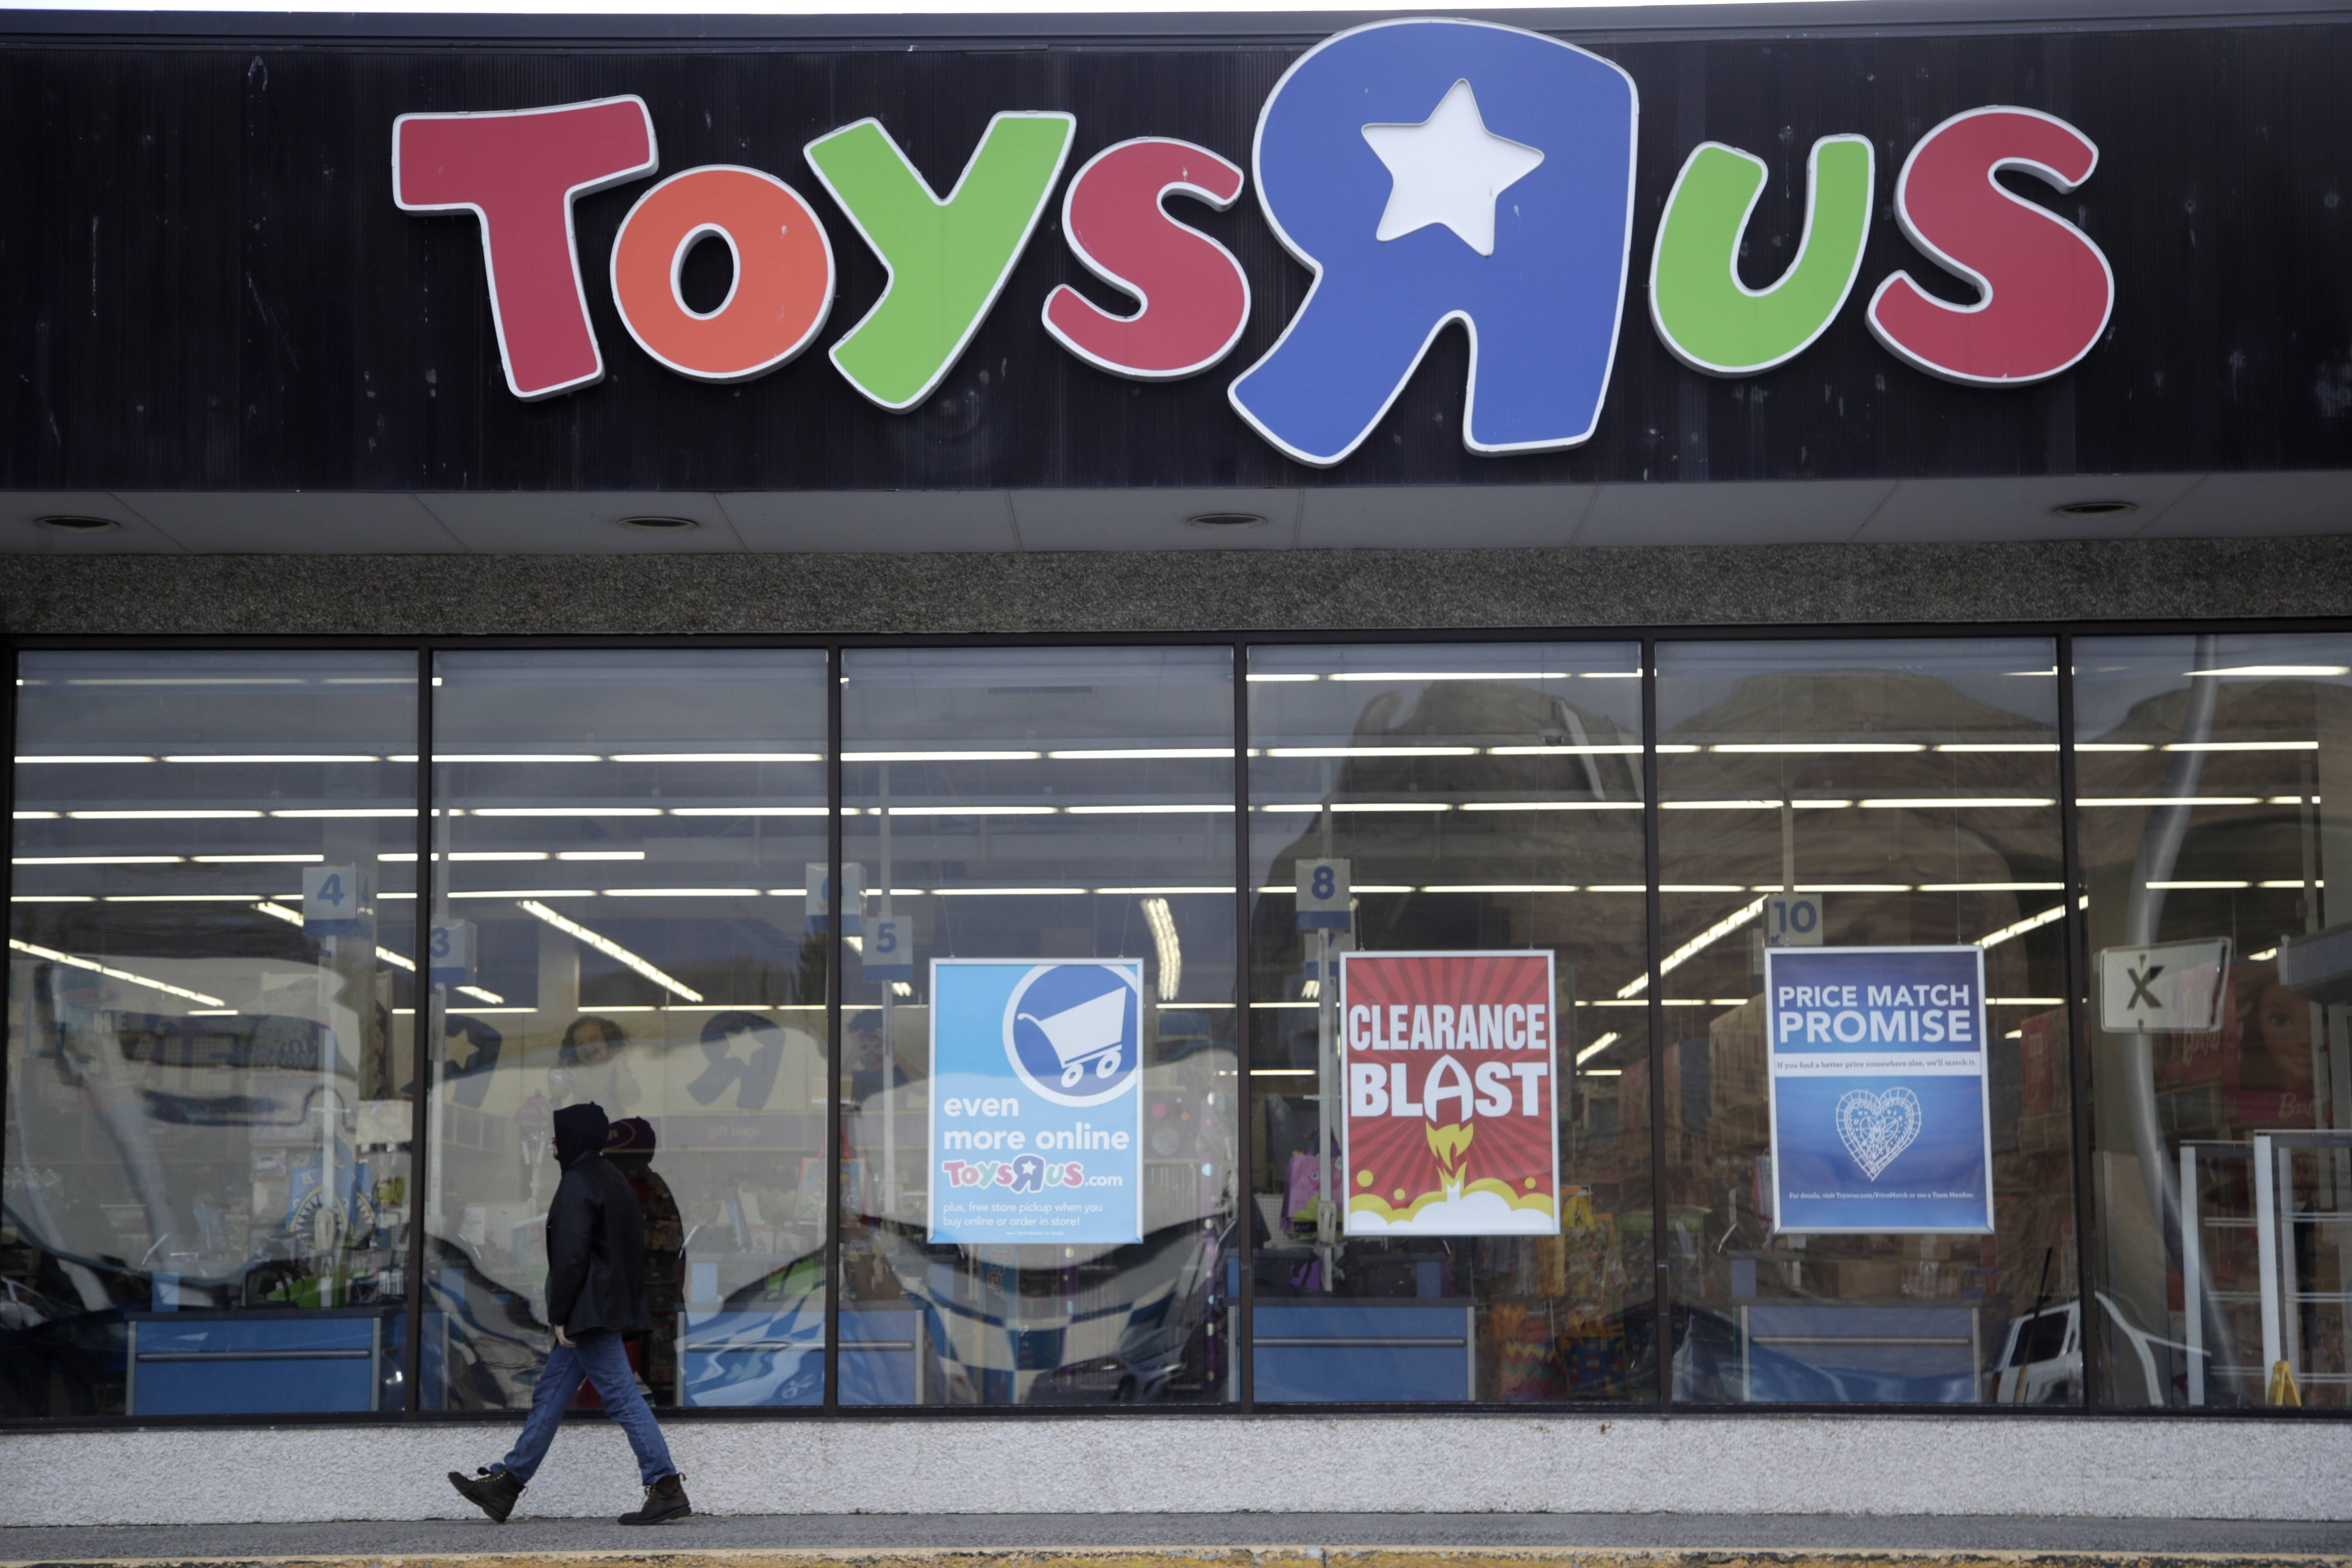 Liquidation sales are kicking off at Toys R Us.